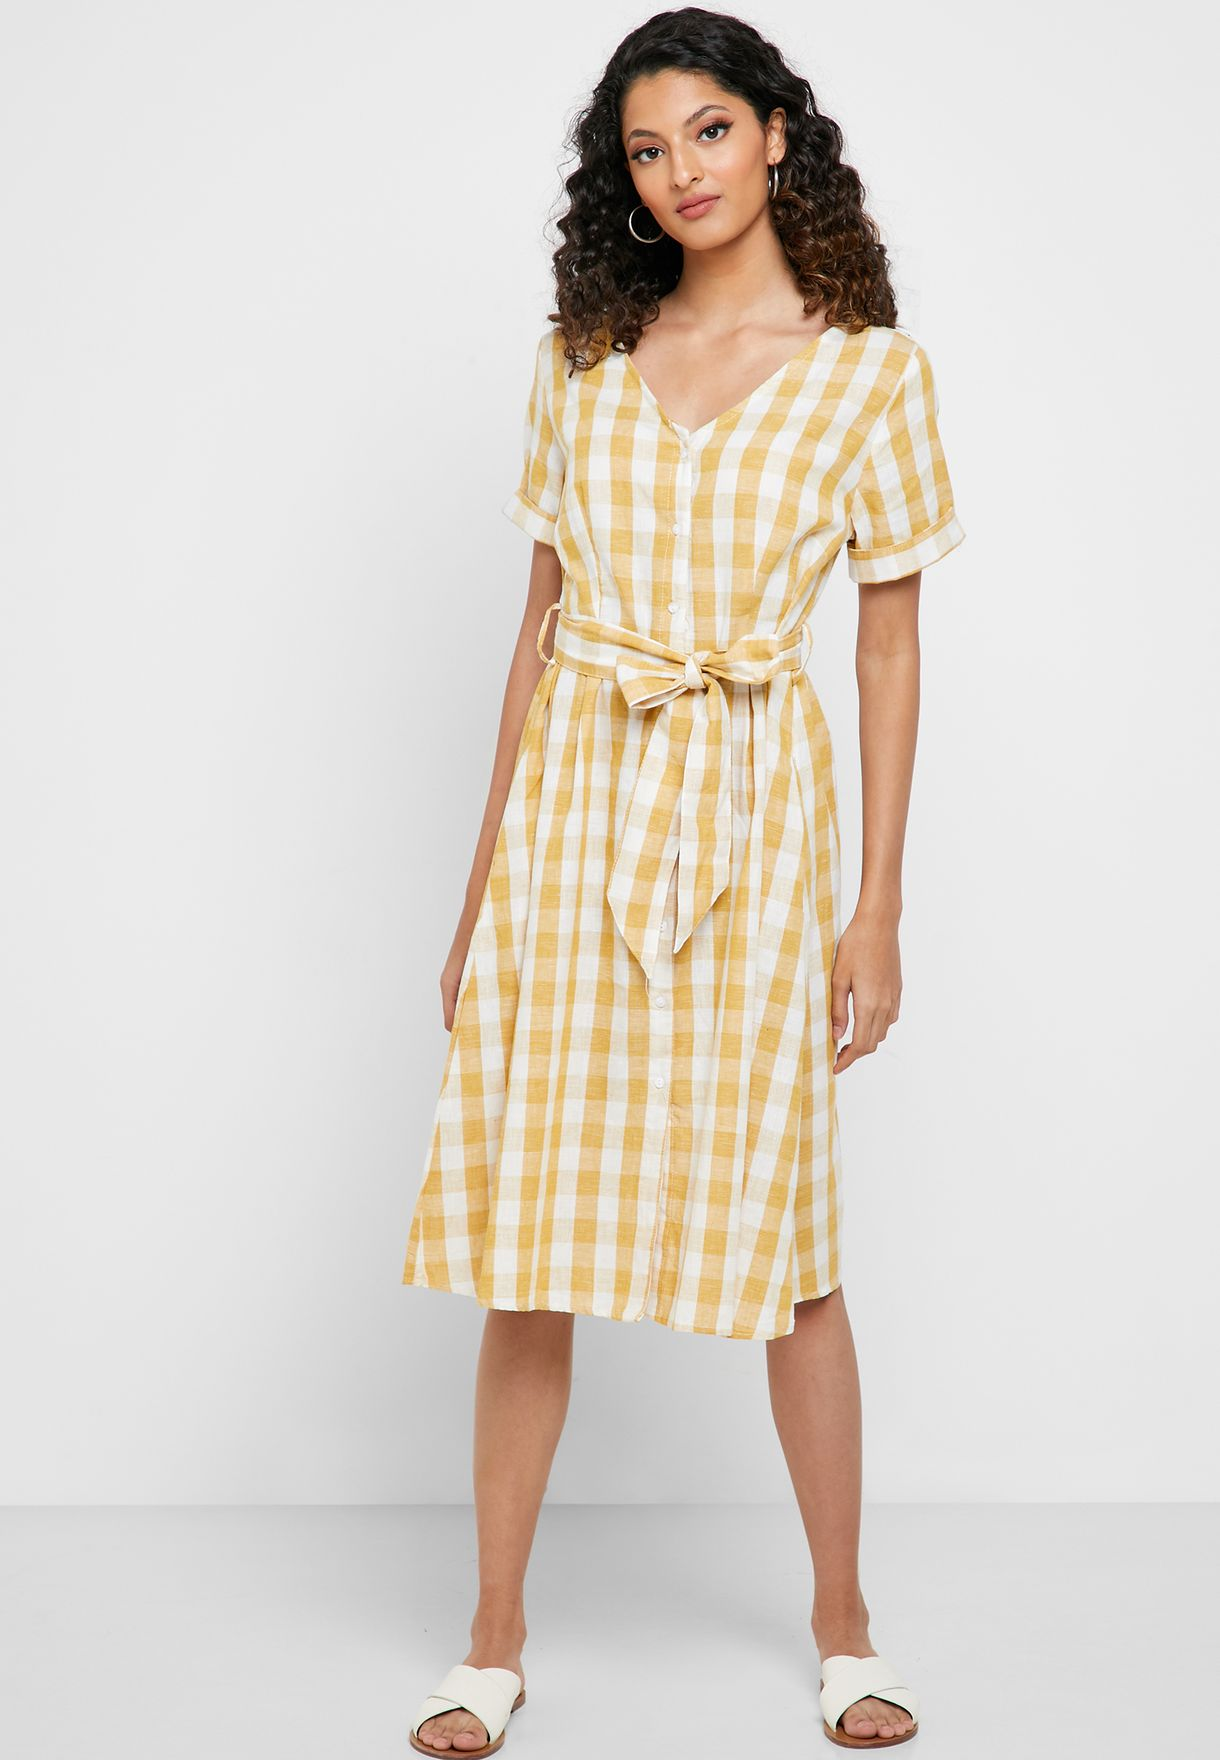 Gingham Self Tie Midi Dress